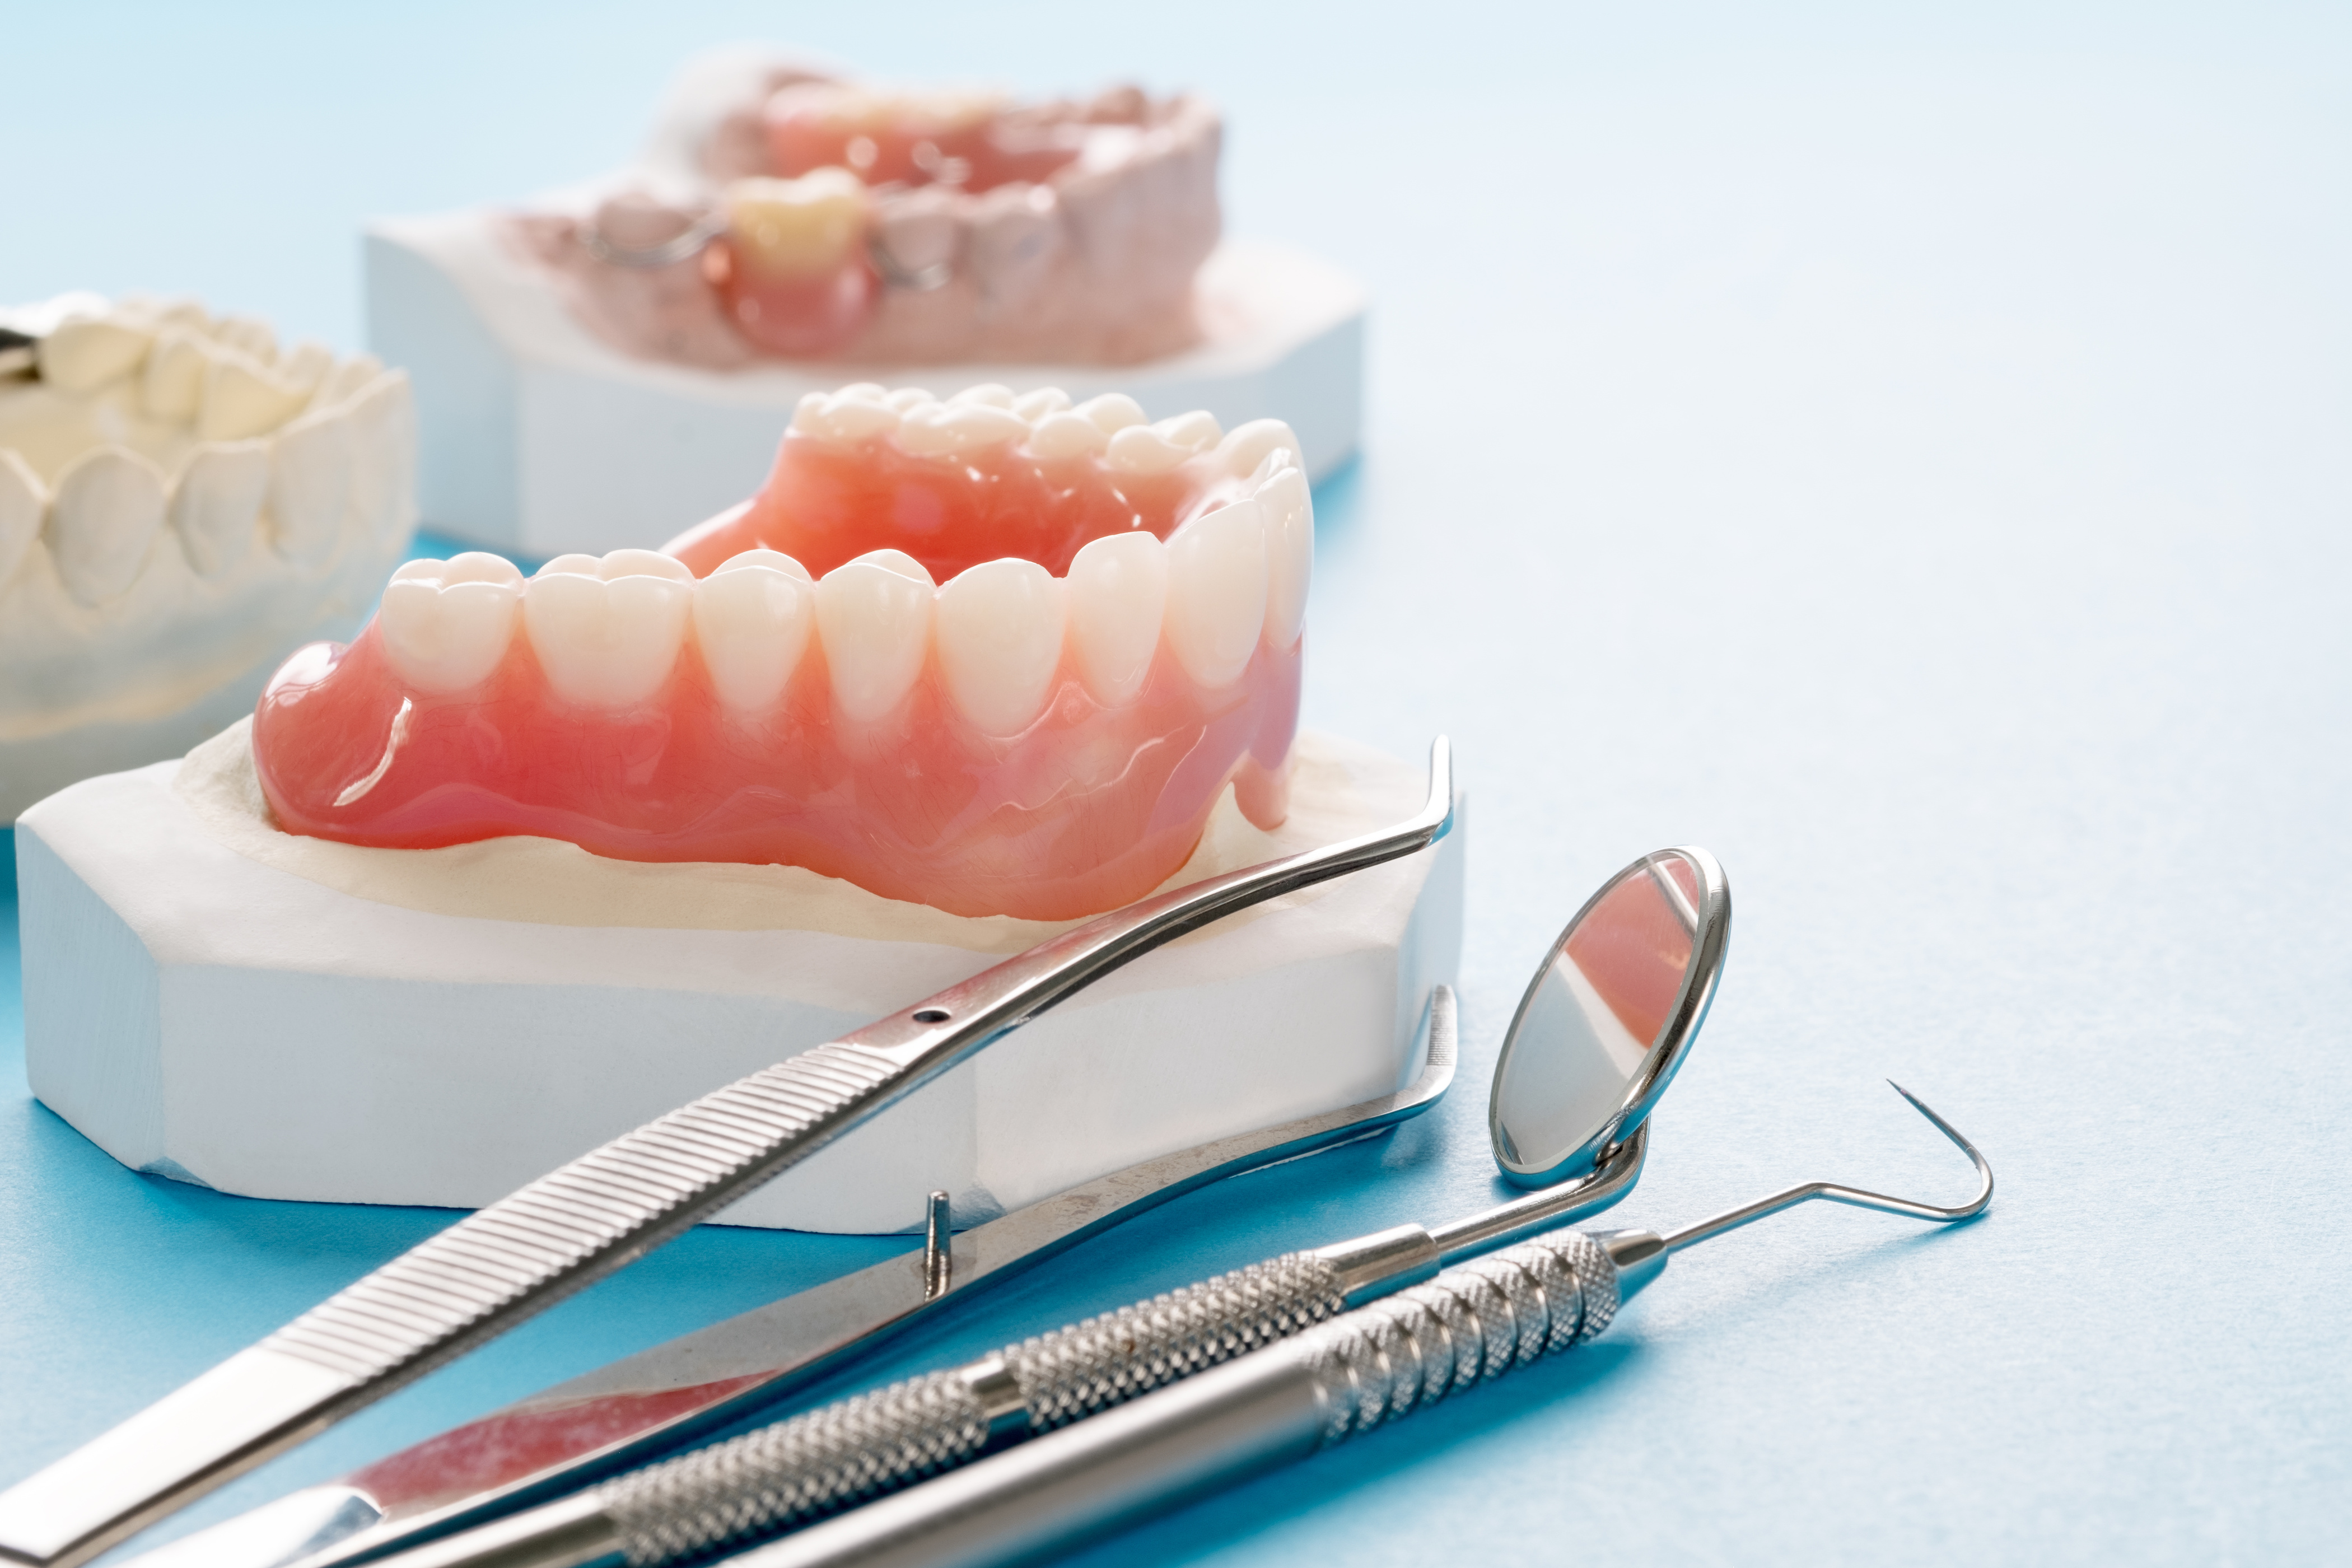 dentures with tools